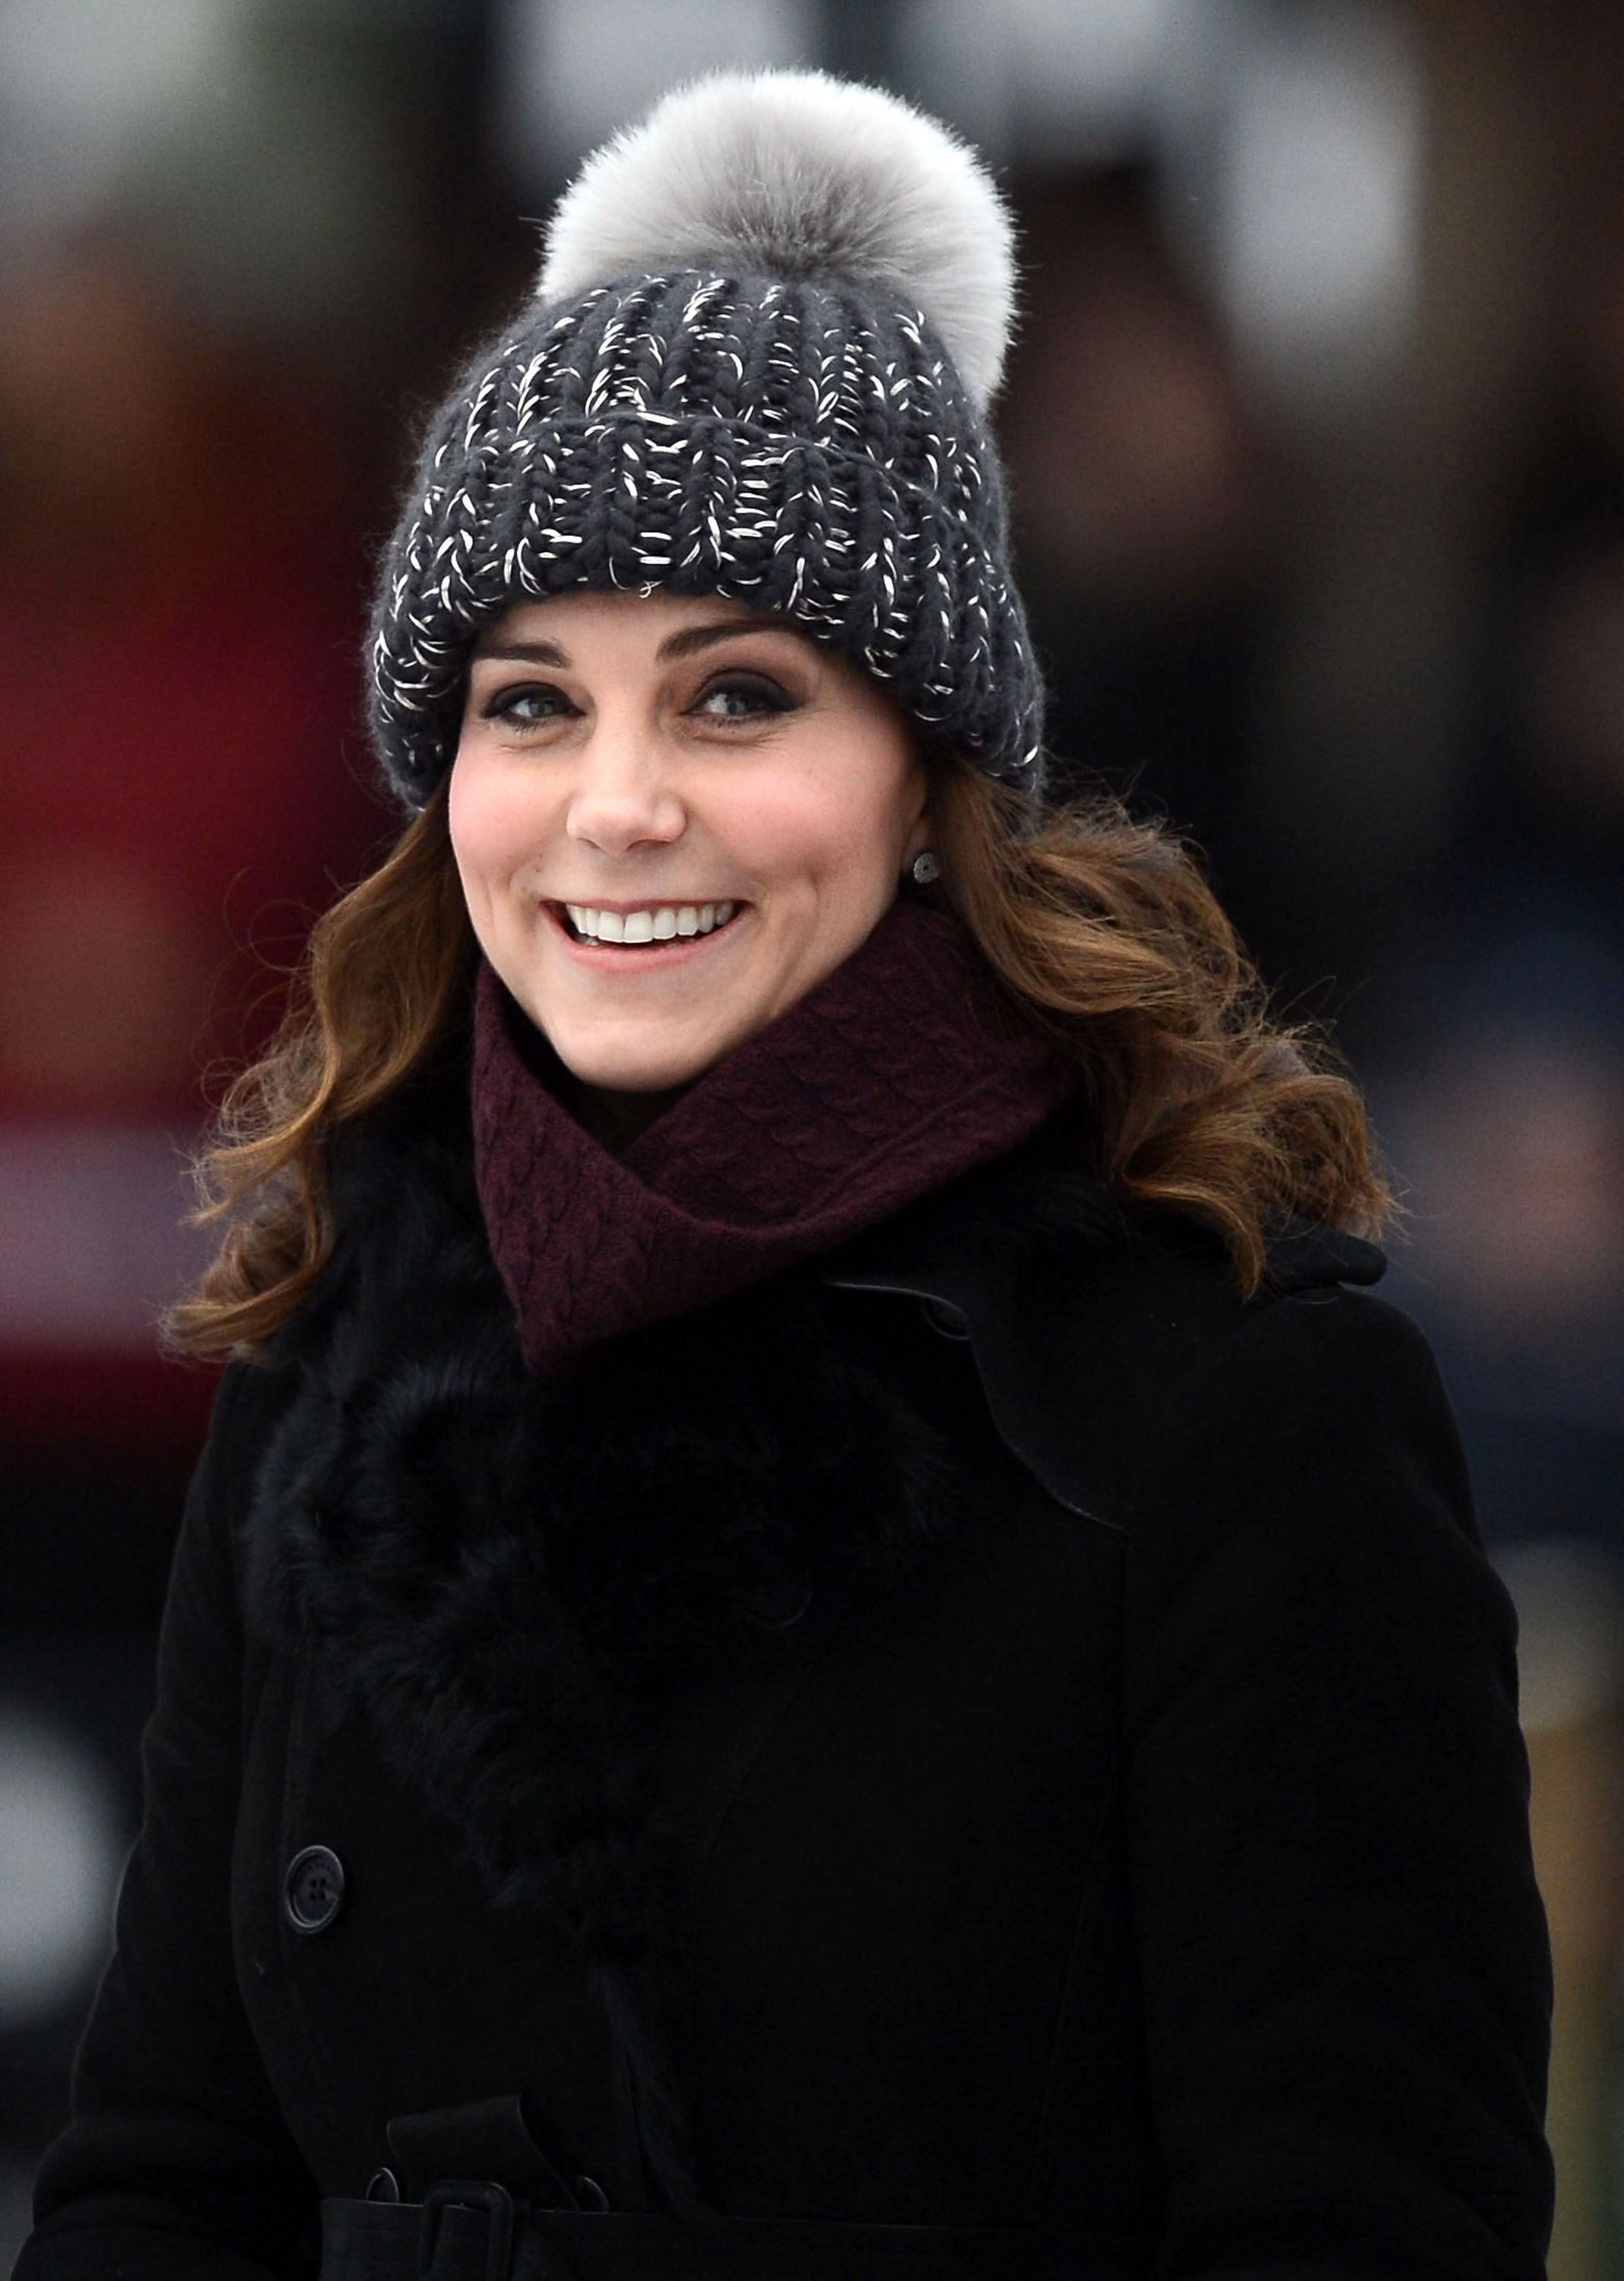 Kate Middleton's Most Controversial Royal Moments - Kate Middleton